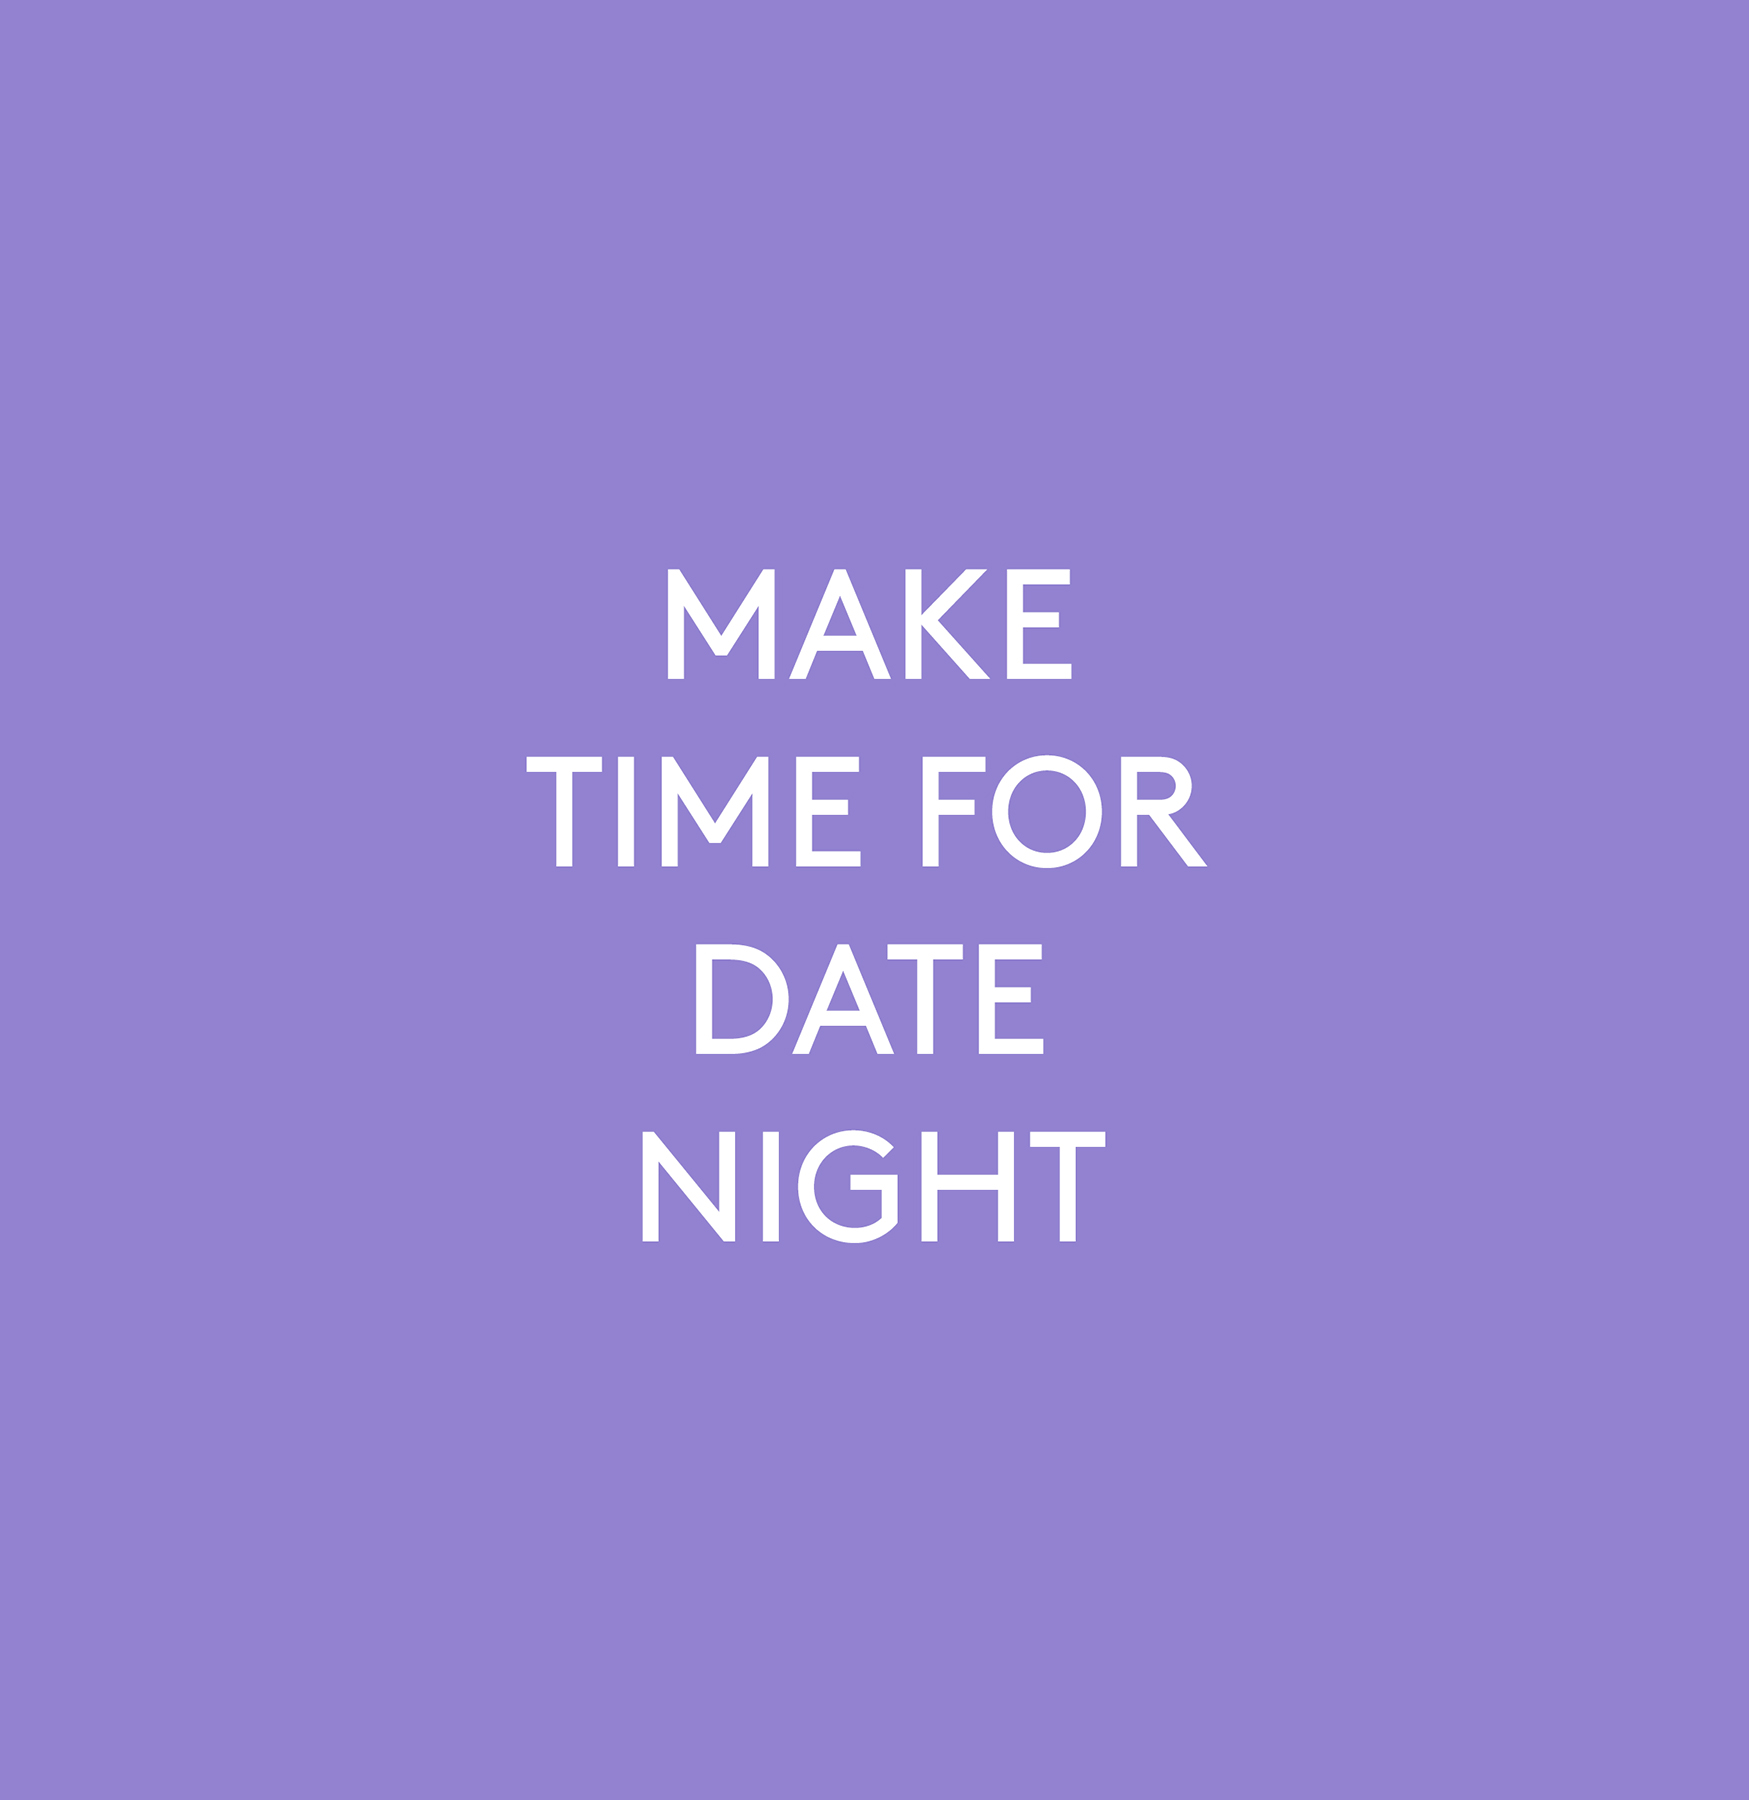 It's a Cliché for a Reason: Make Time for Date Night